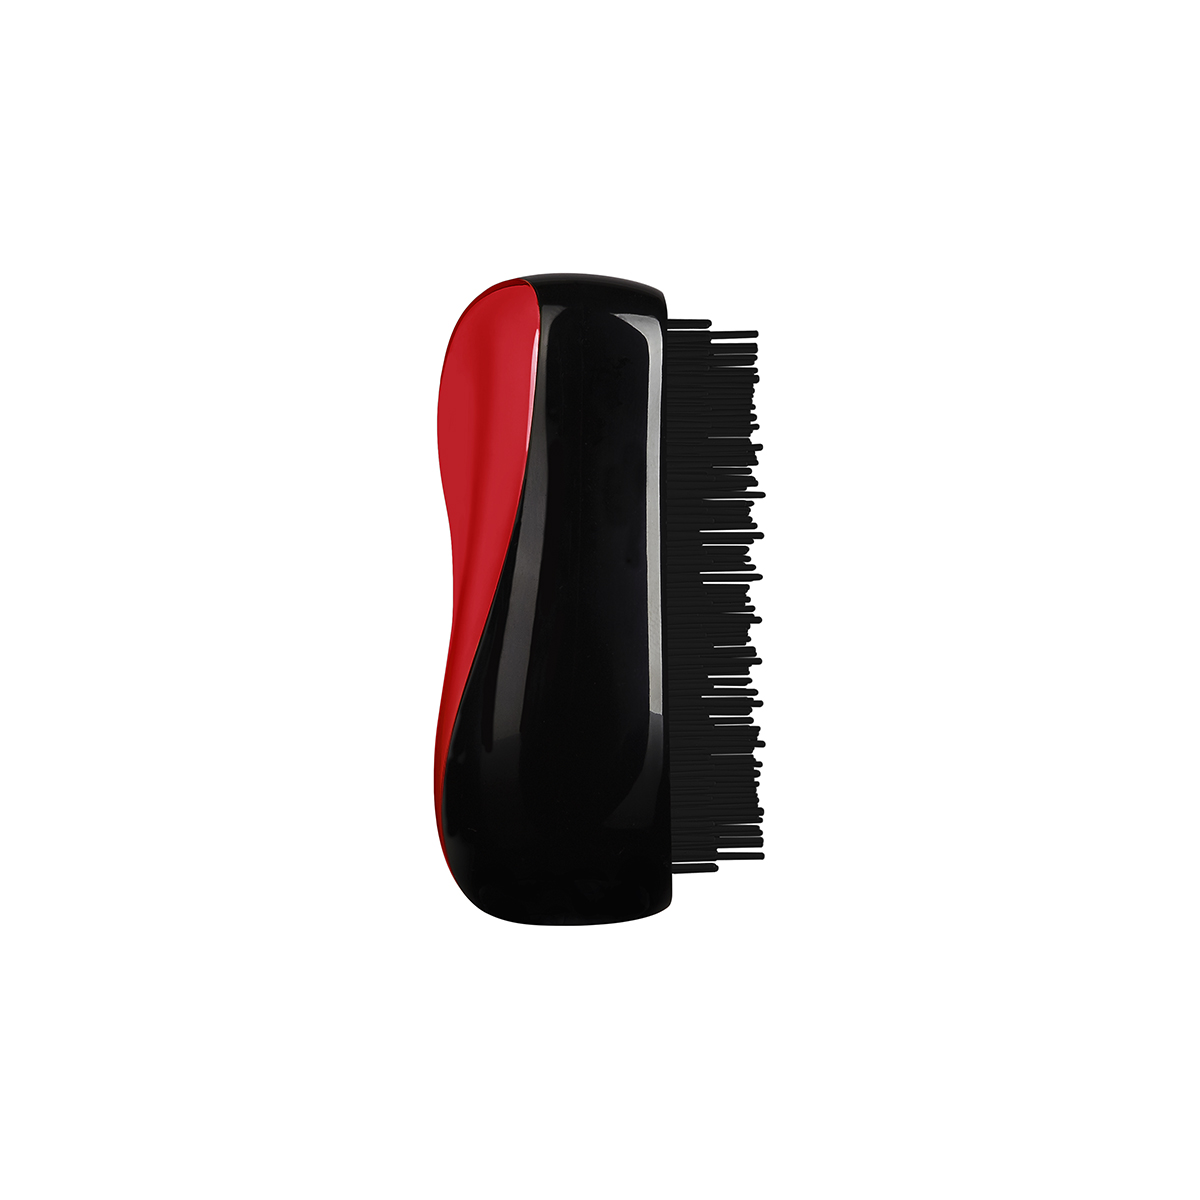 Расческа Tangle Teezer Compact Styler Cherry Blossom